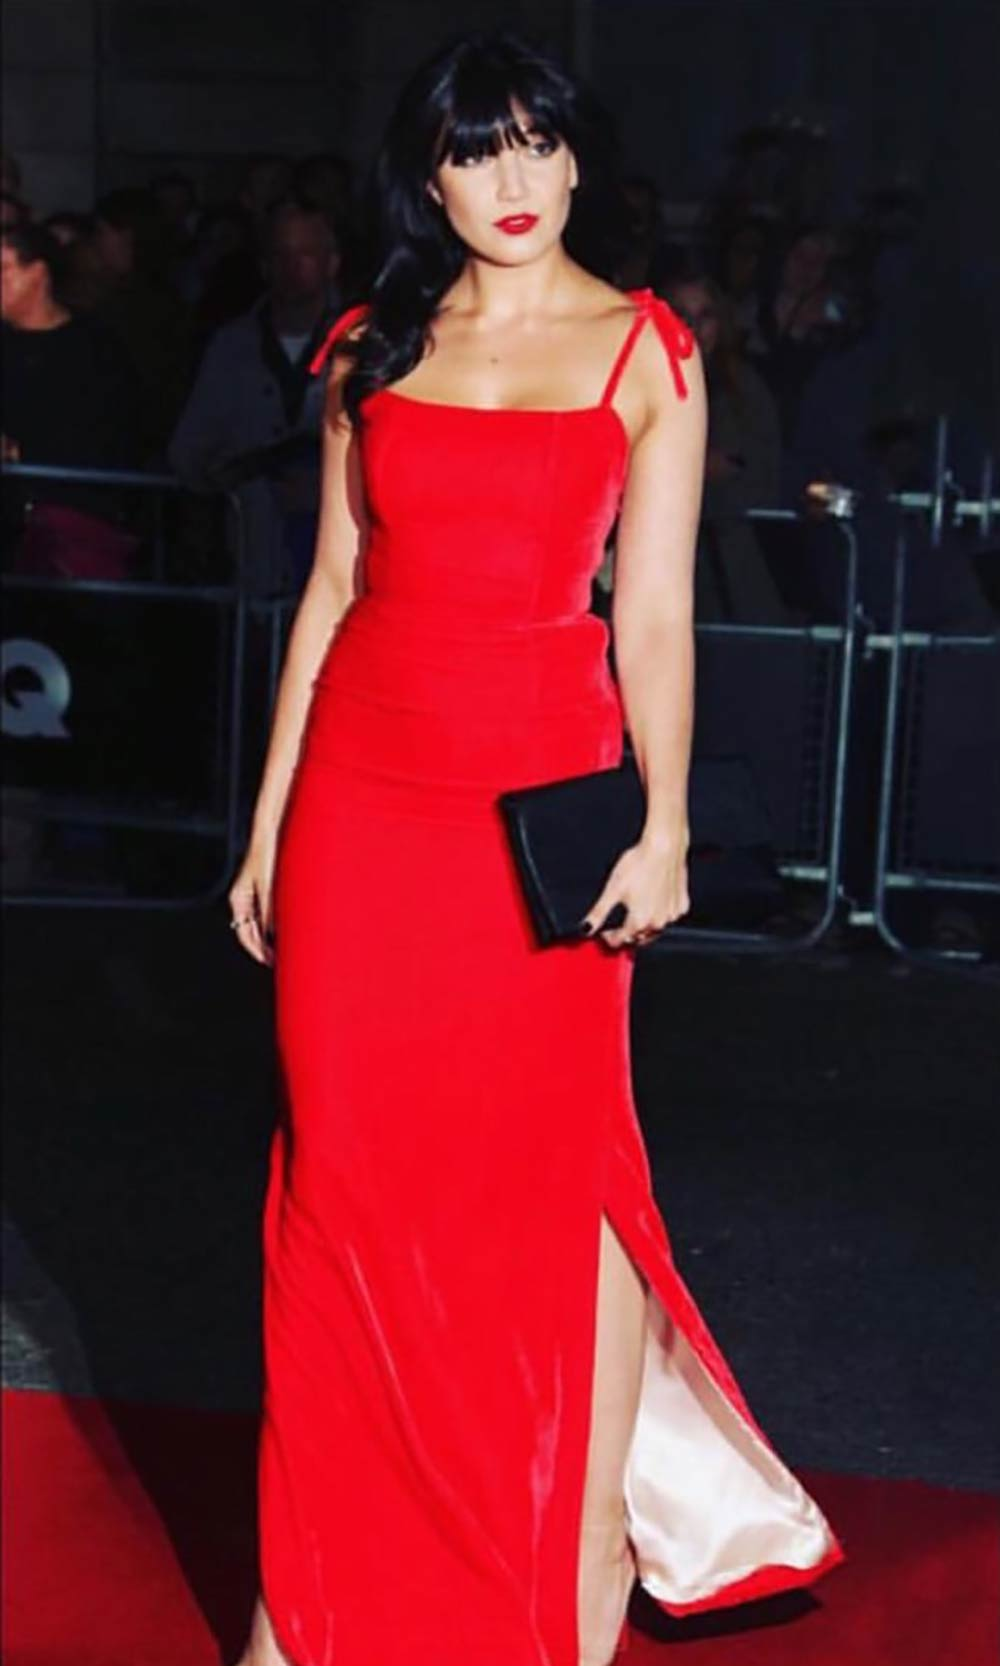 Daisy Lowe wears The Vampire's Wife to the GQ awards.